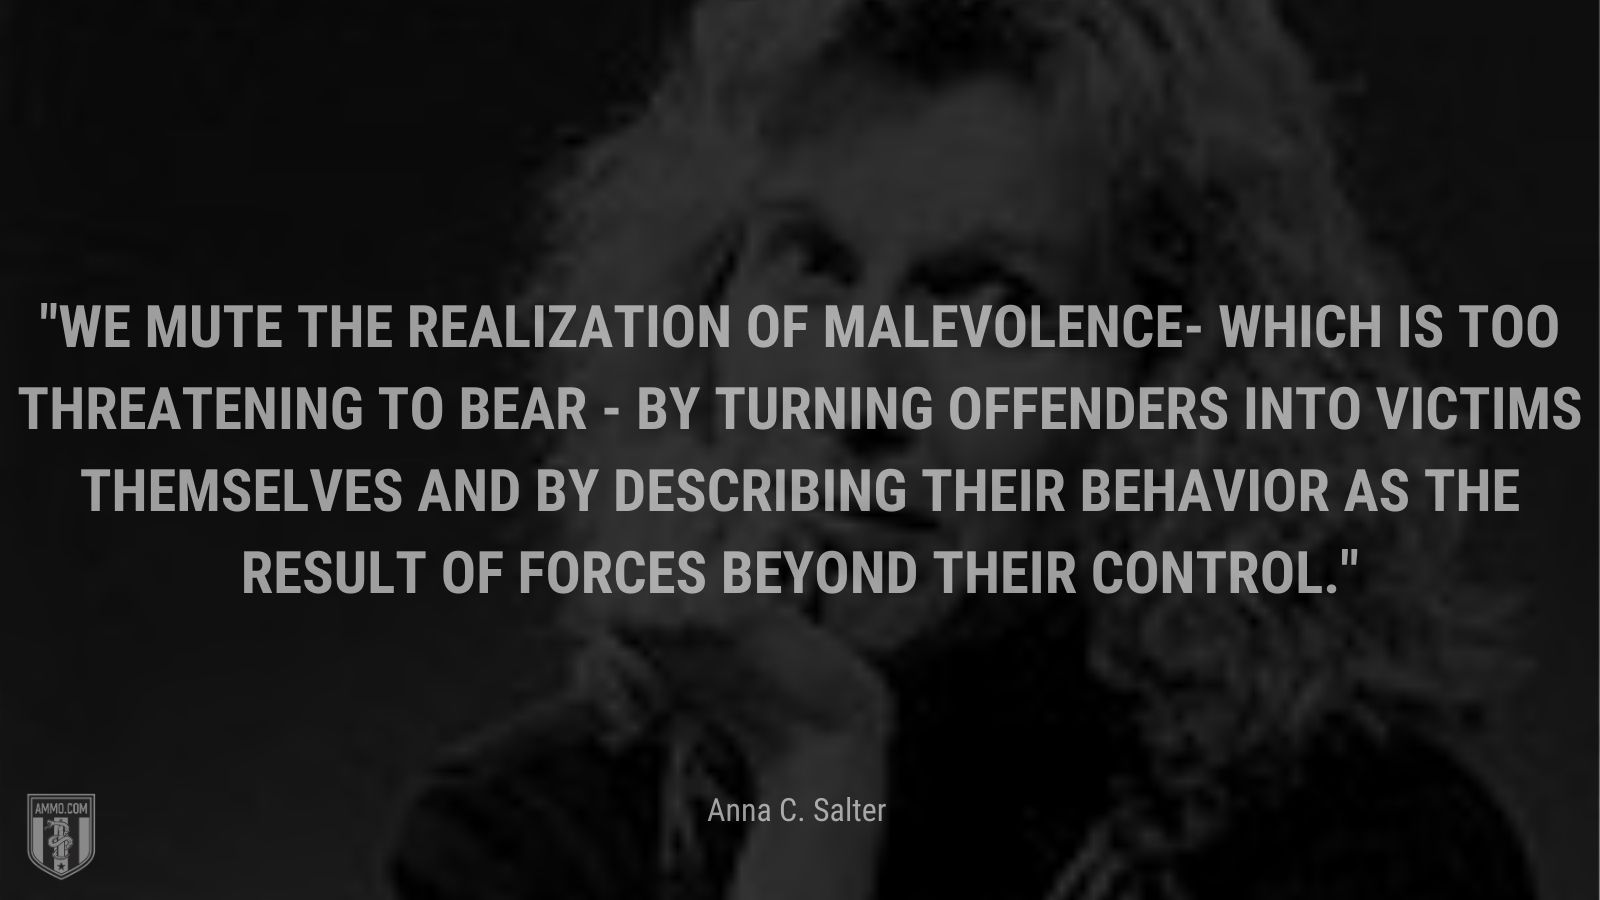 """""""We mute the realization of malevolence- which is too threatening to bear - by turning offenders into victims themselves and by describing their behavior as the result of forces beyond their control."""" - Anna C. Salter"""